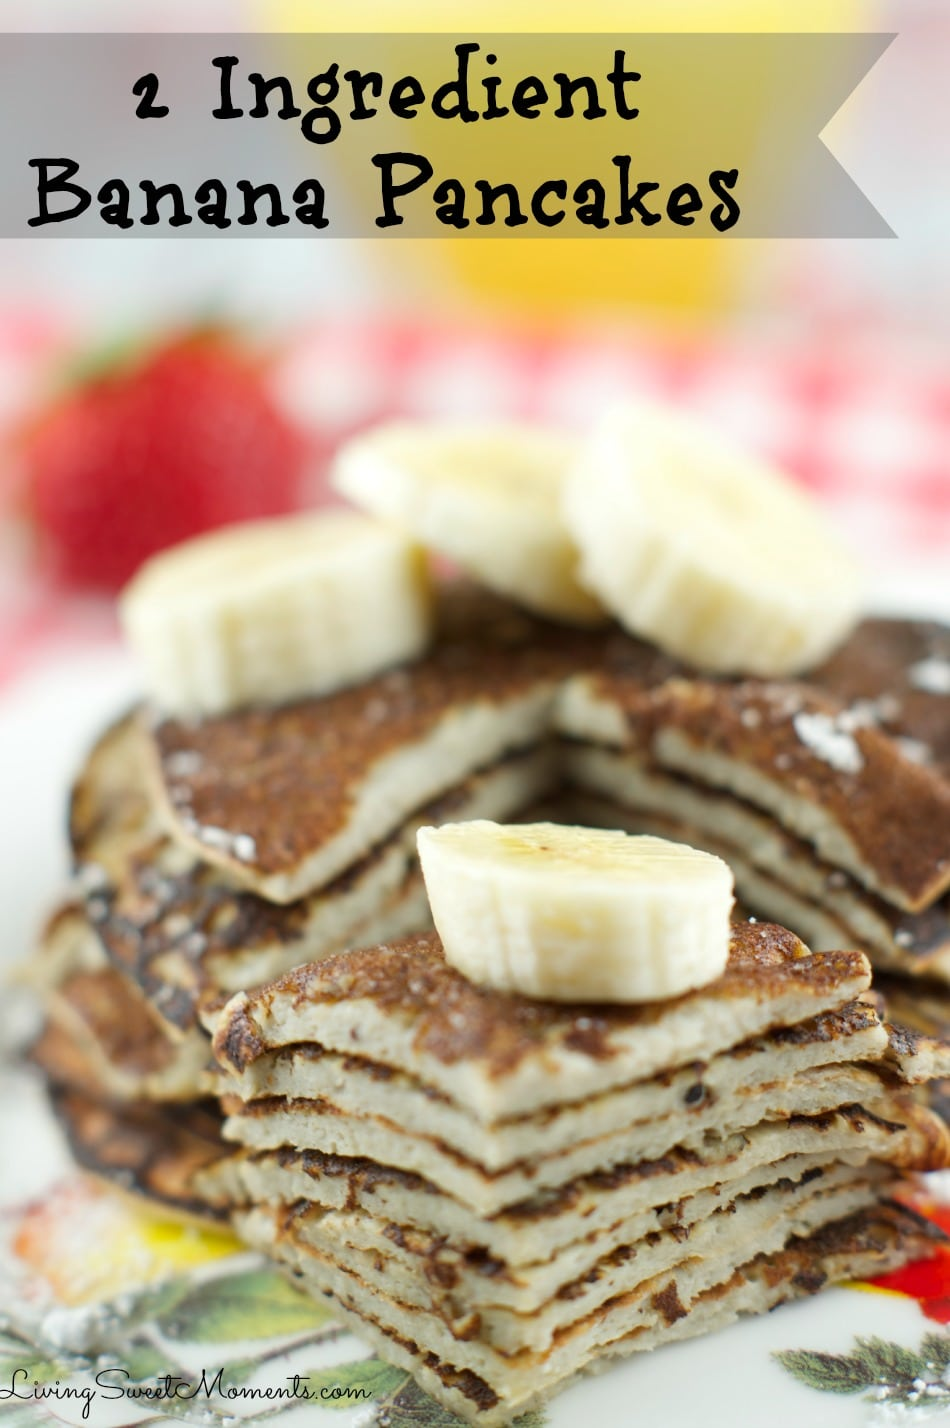 2 ingredient banana pancakes recipe living sweet moments 2 ingredient banana pancakes so easy to make all you need is 2 eggs ccuart Gallery